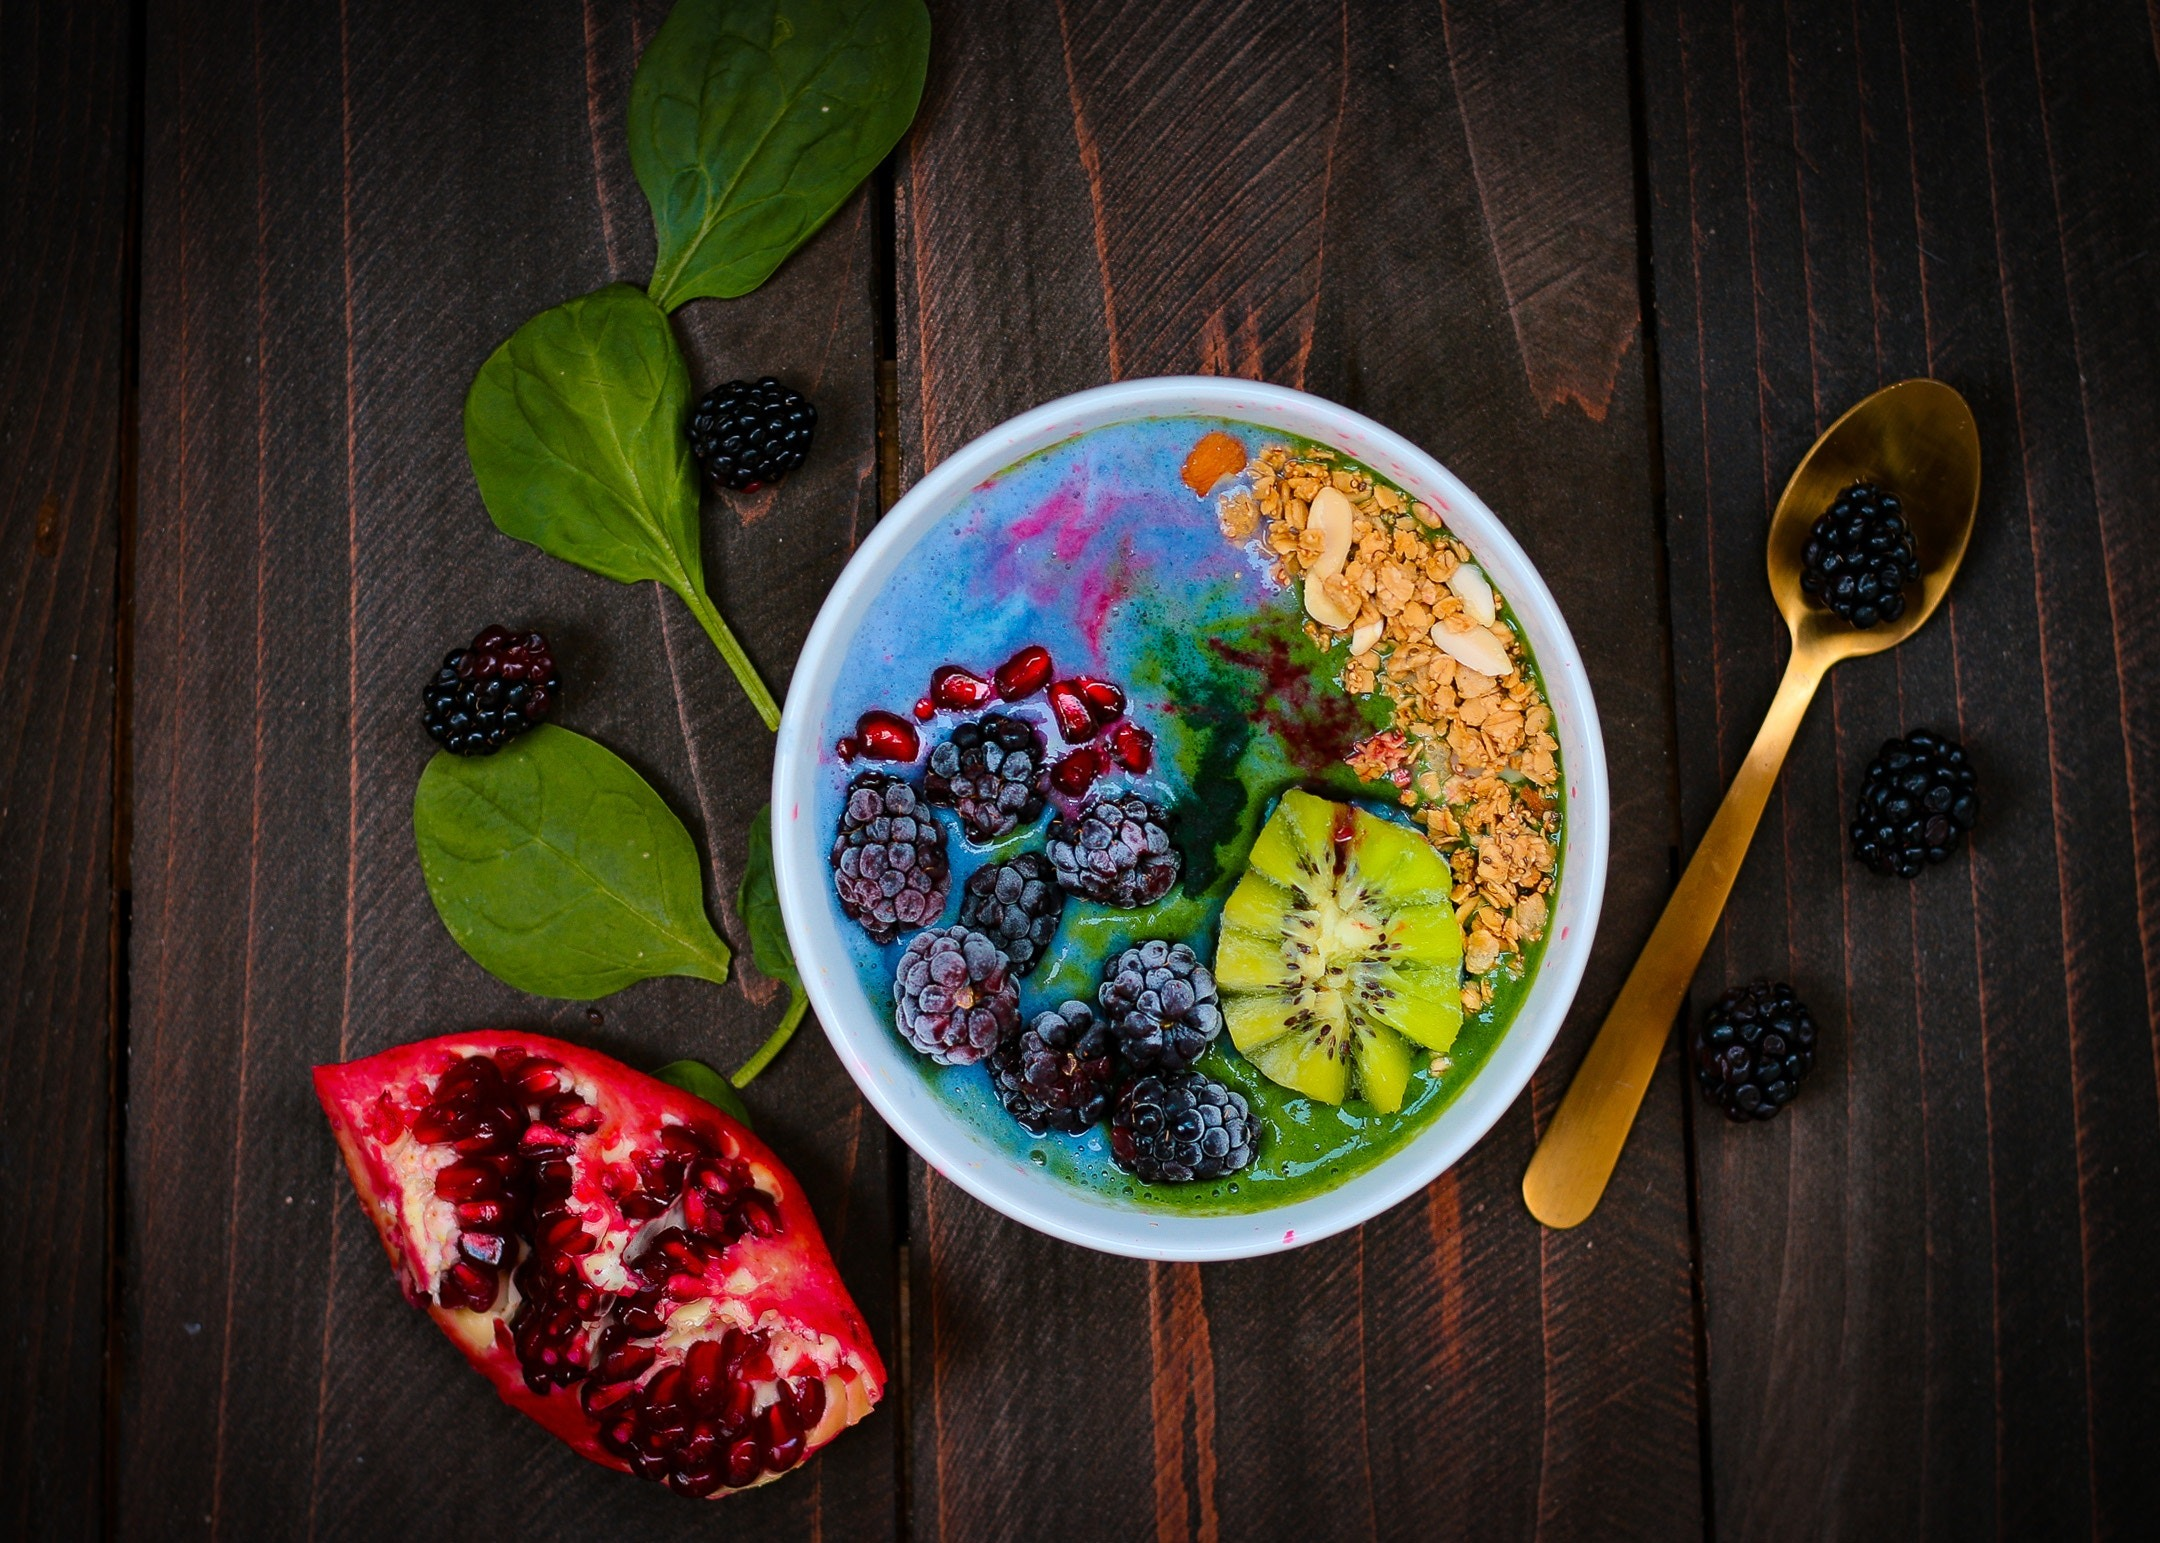 Healthy balanced foods help your body the find the equilibrium it craves